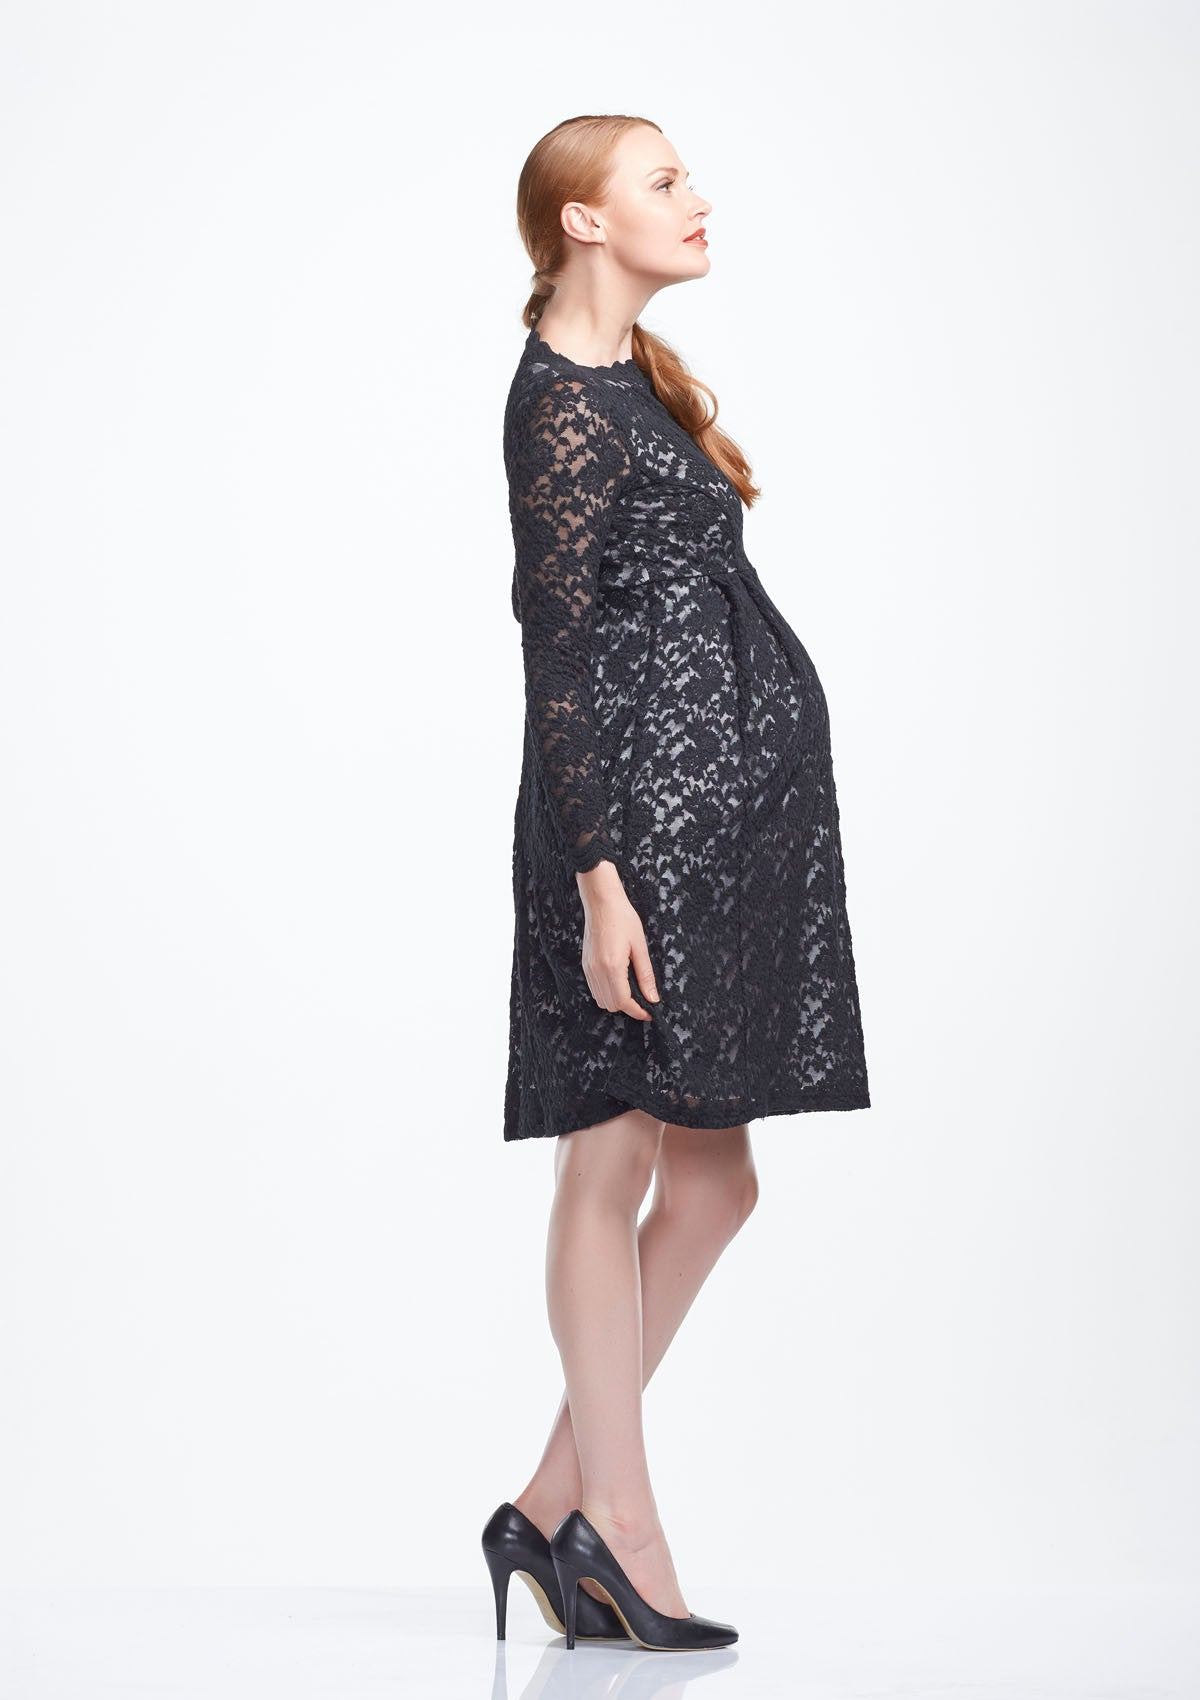 You searched for: lace maternity dress! Etsy is the home to thousands of handmade, vintage, and one-of-a-kind products and gifts related to your search. No matter what you're looking for or where you are in the world, our global marketplace of sellers can help you .